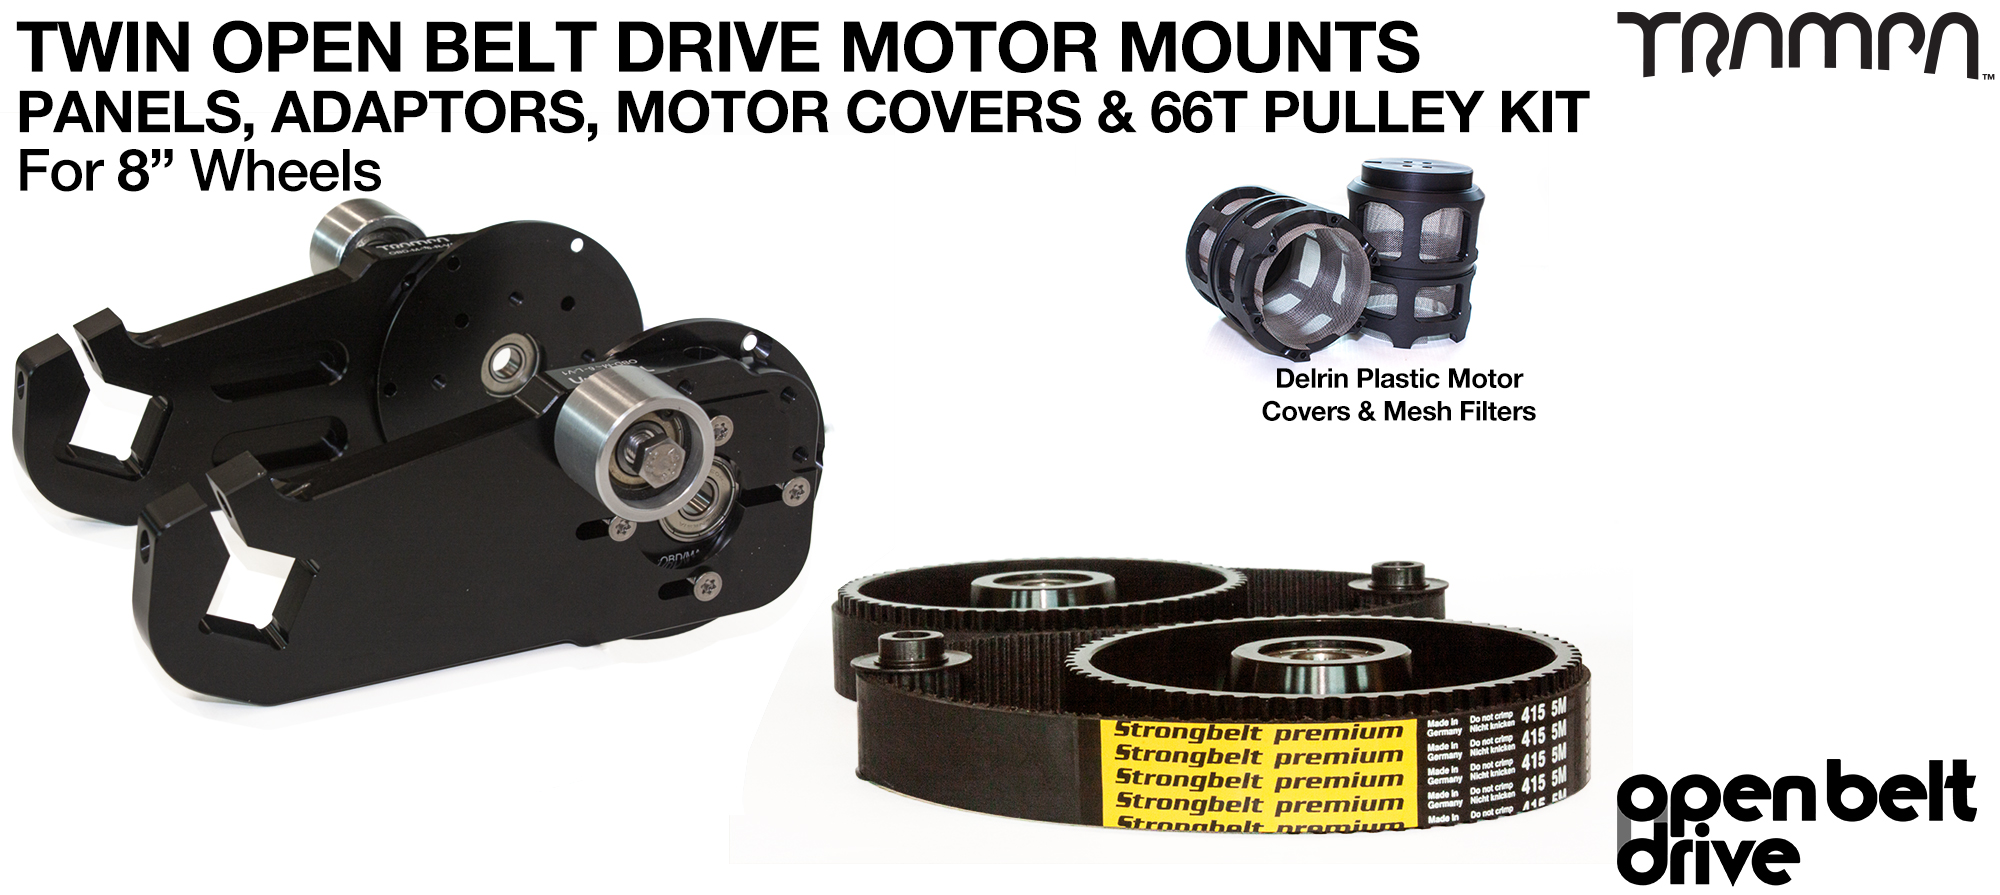 66T Open Belt Drive OBD Motor Mount with 66 tooth Pulley for 8 inch Wheels Custom TRAMPA Motor & Motor Protection - TWIN